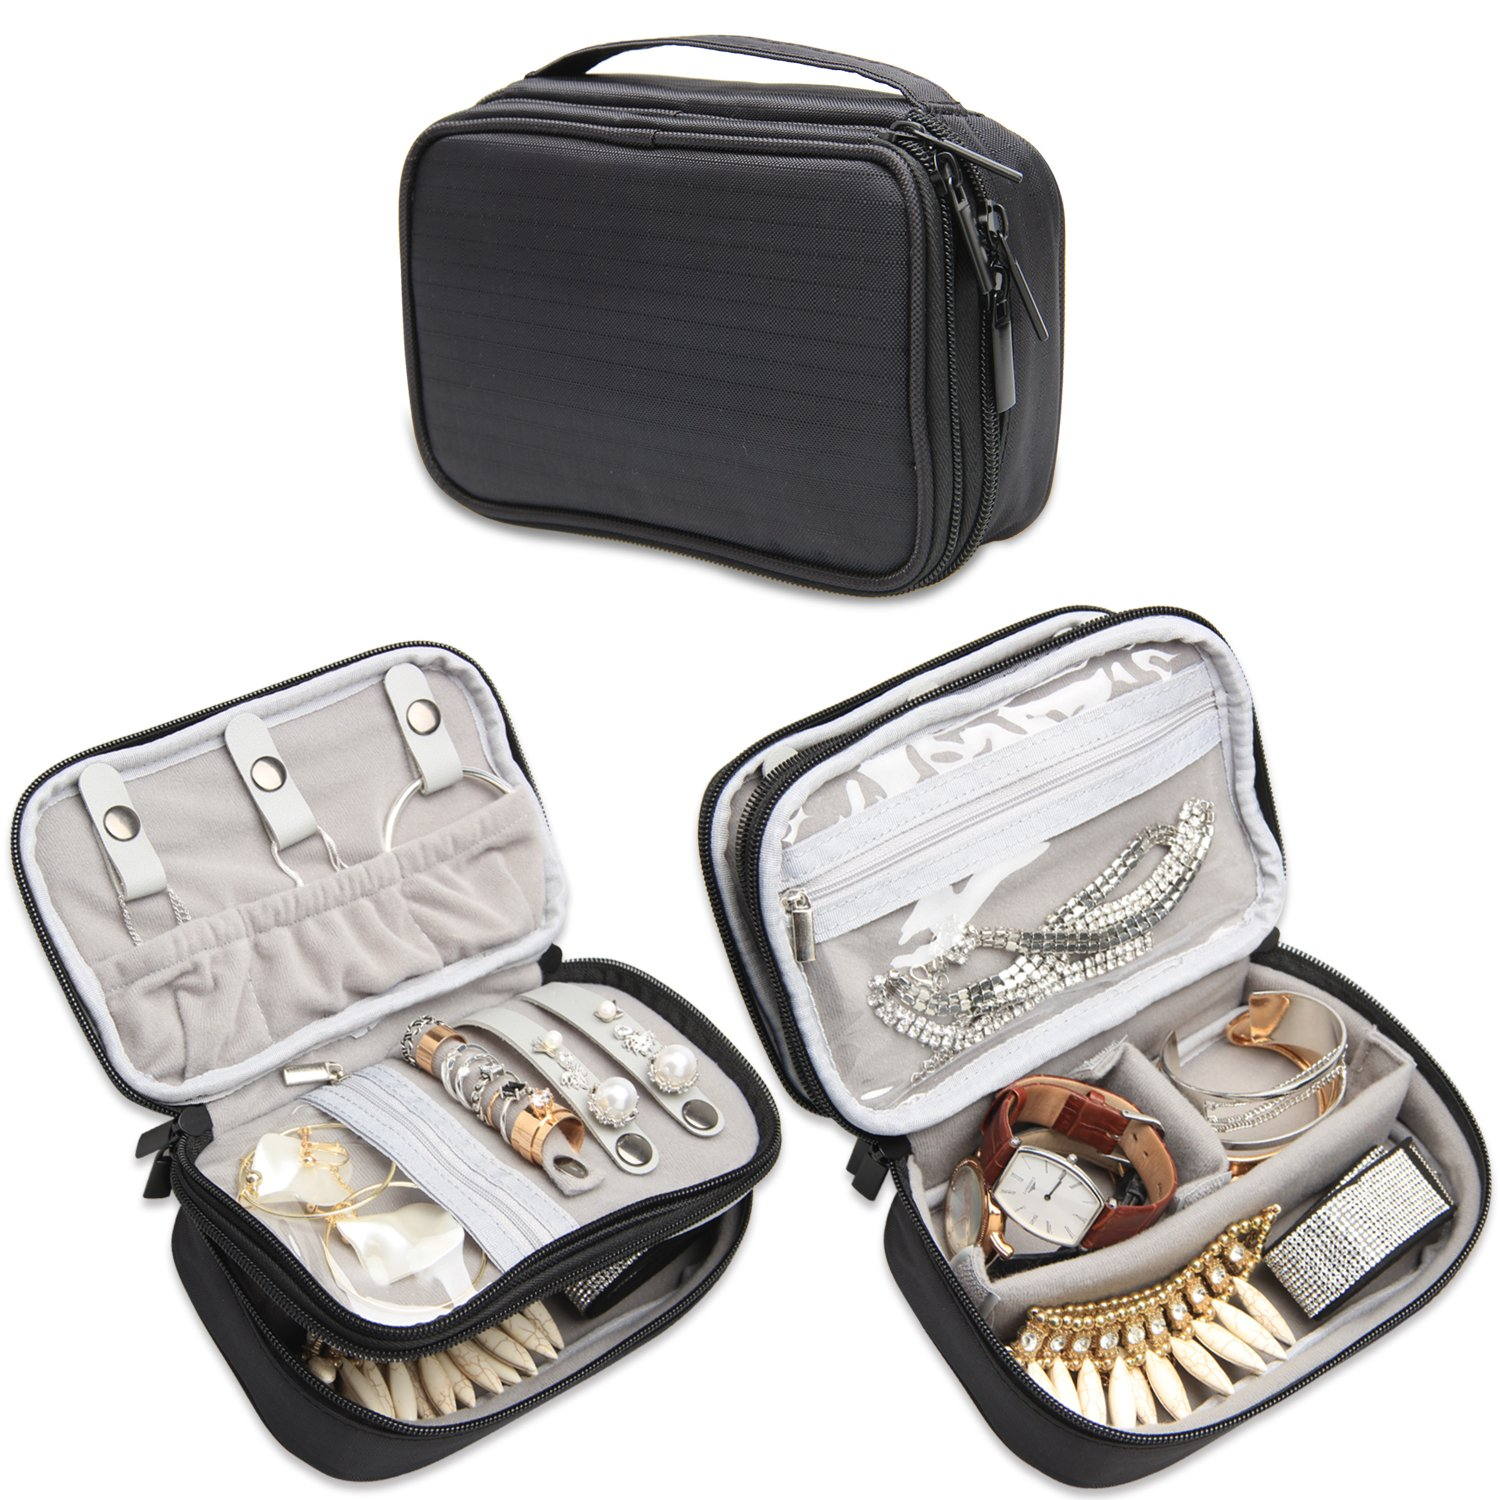 Teamoy Travel Jewelry Organizer Case Jewelry Accessories Holder